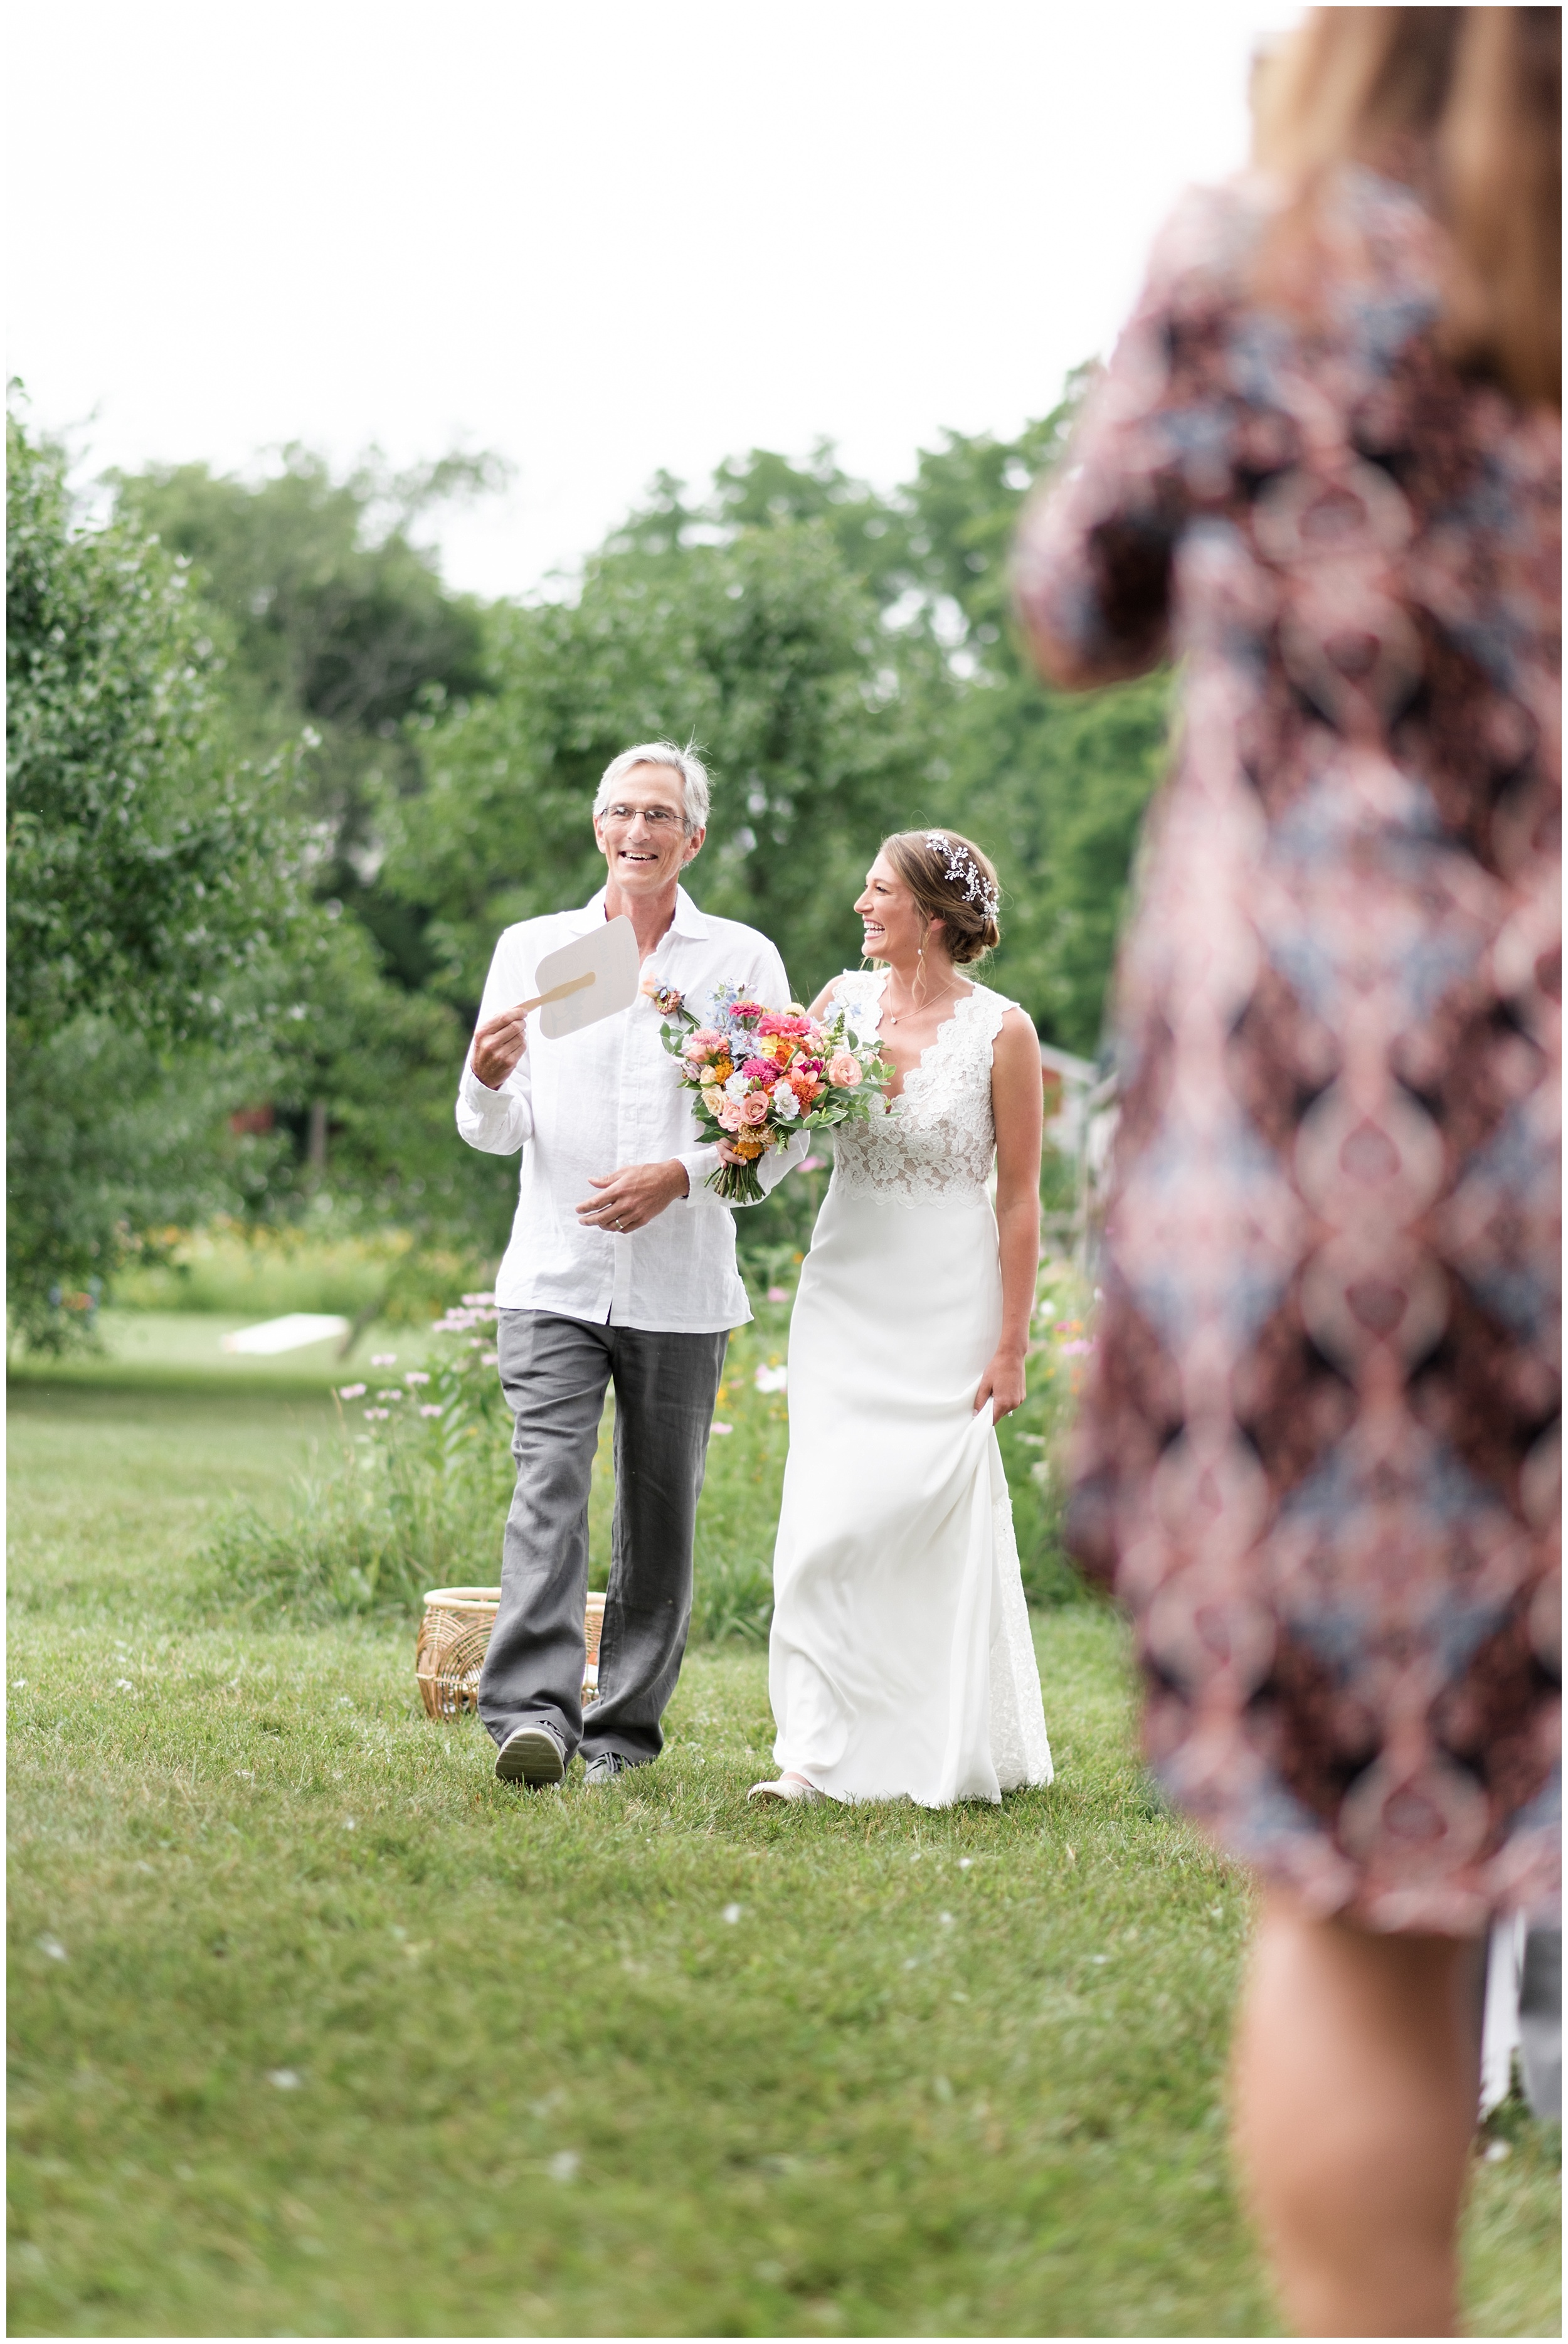 Whimsical-Ethereal-July-Kalamazoo-Wedding-Bright-Airy-Documentary-Milwaukee-Photographer_0106.jpg